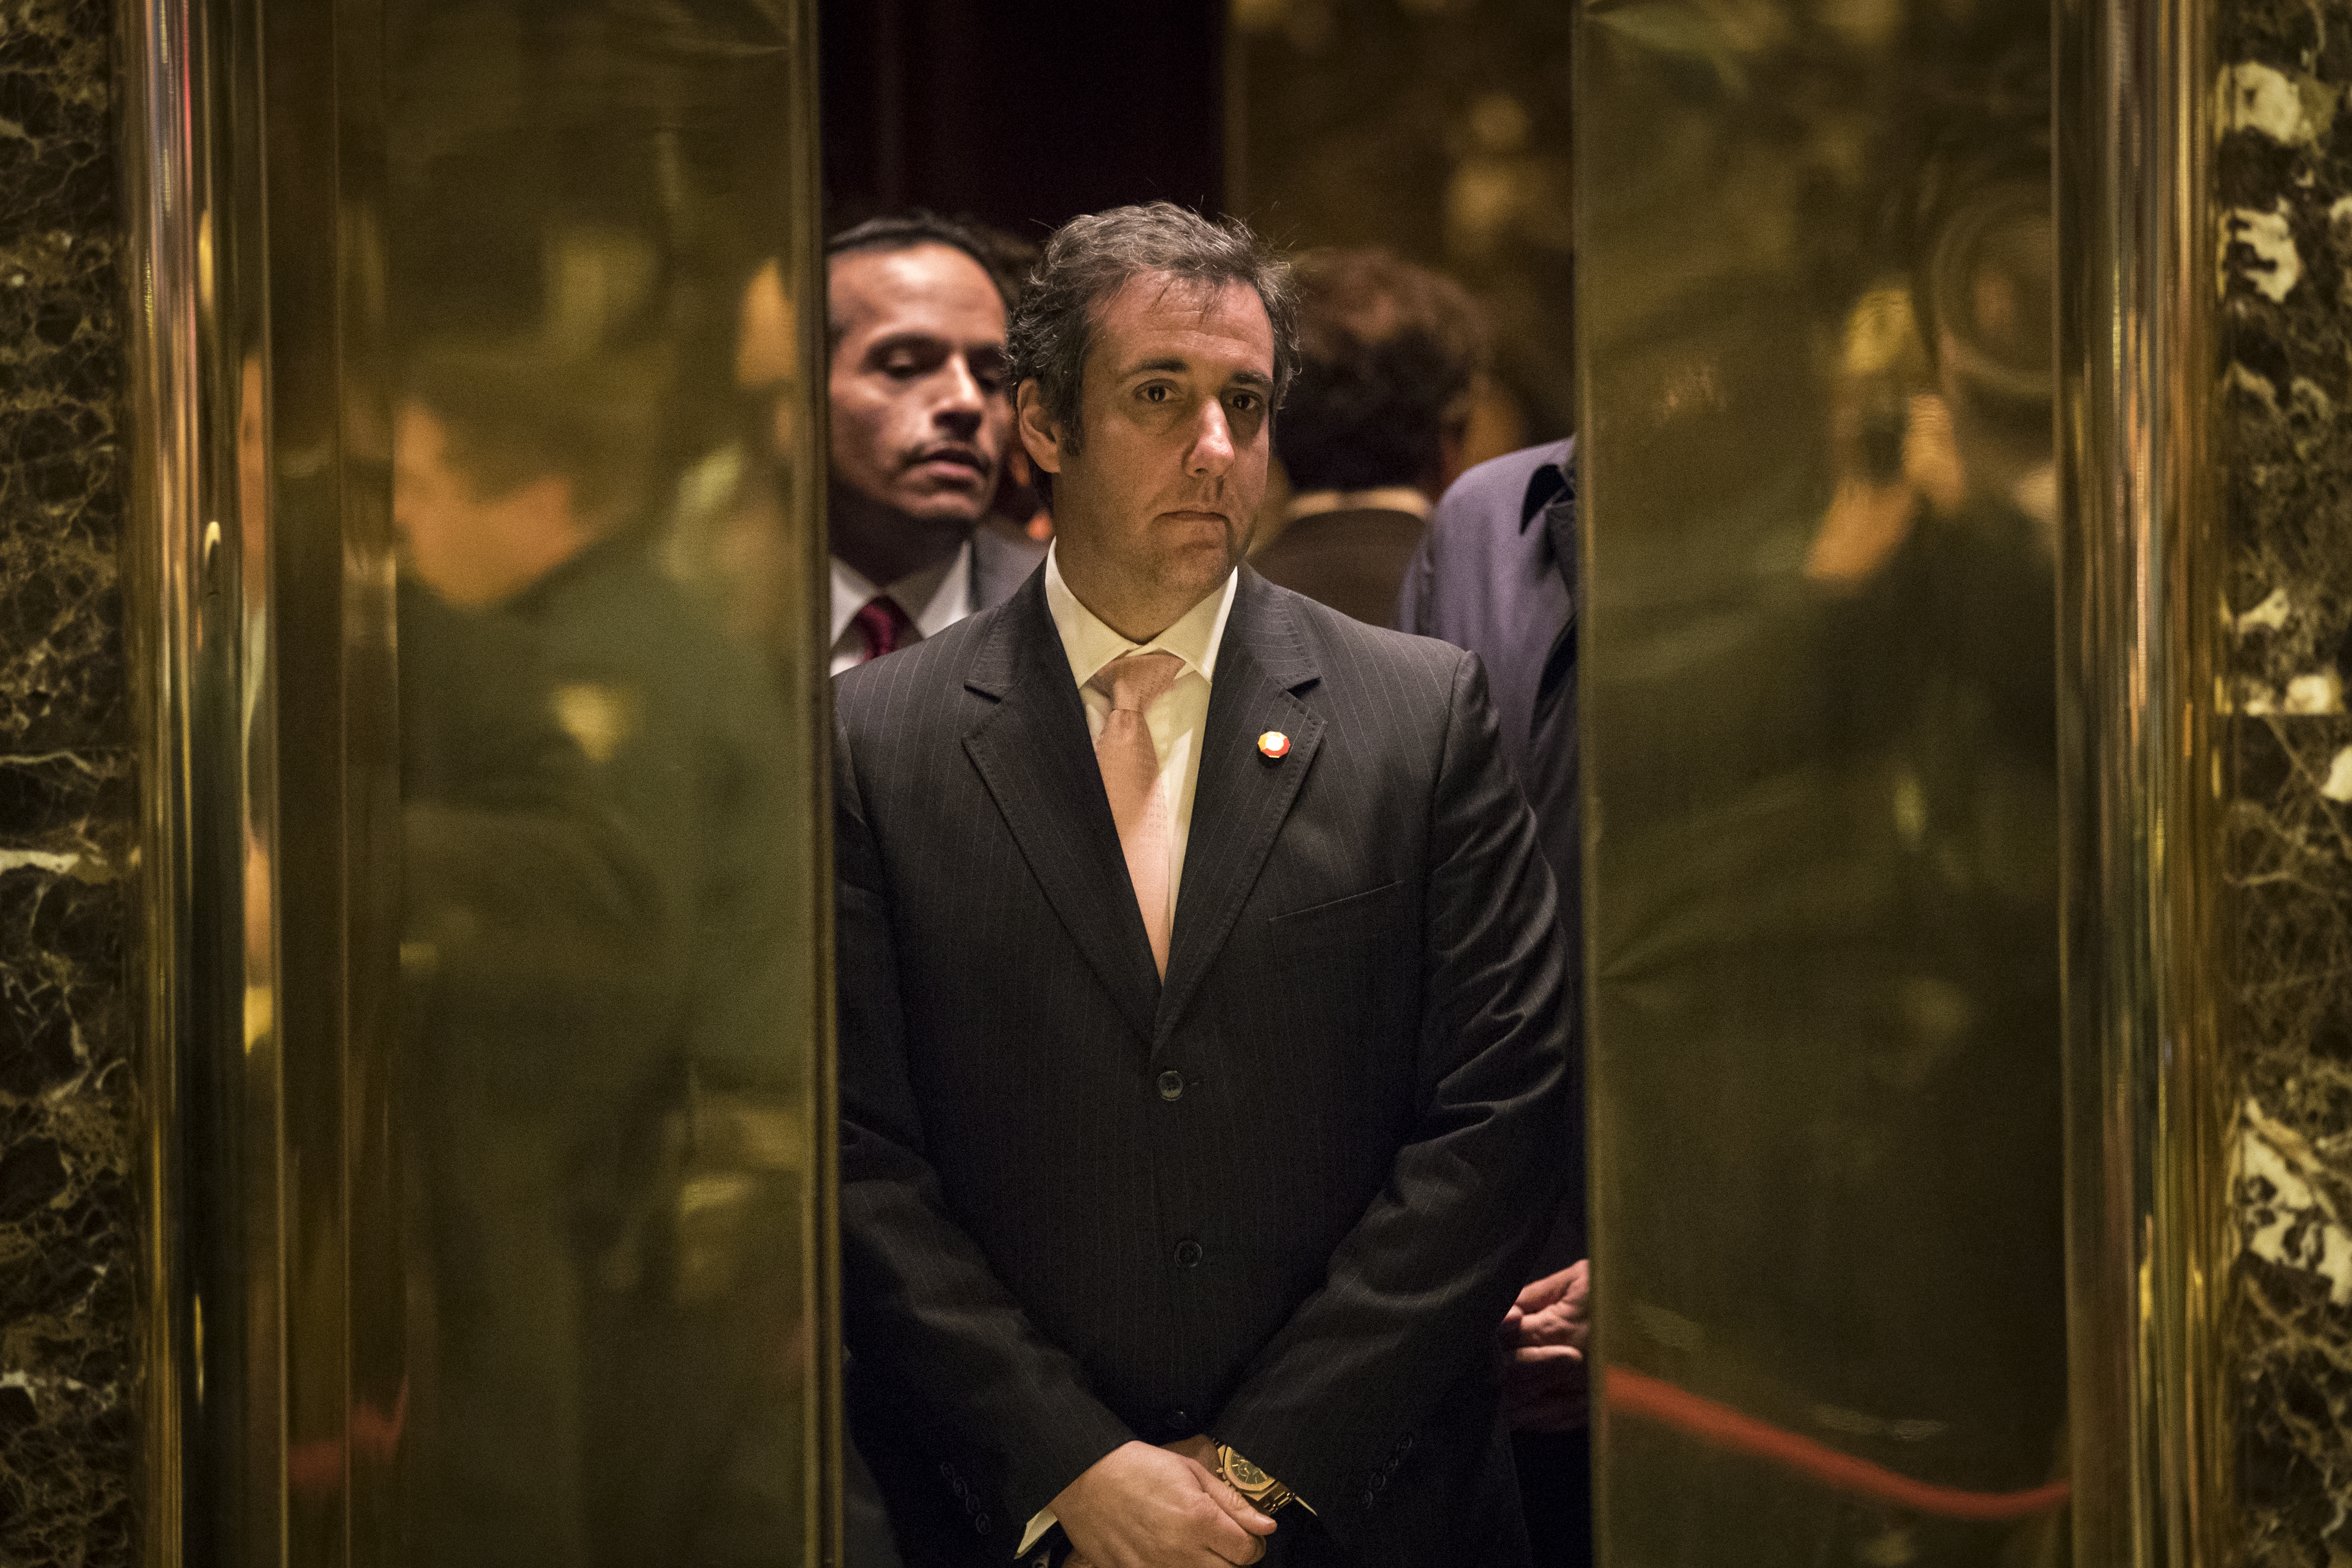 Michael Cohen, personal lawyer for President-elect Donald Trump, gets into an elevator at Trump Tower, Dec 12, 2016 in New York City. (Getty Images)